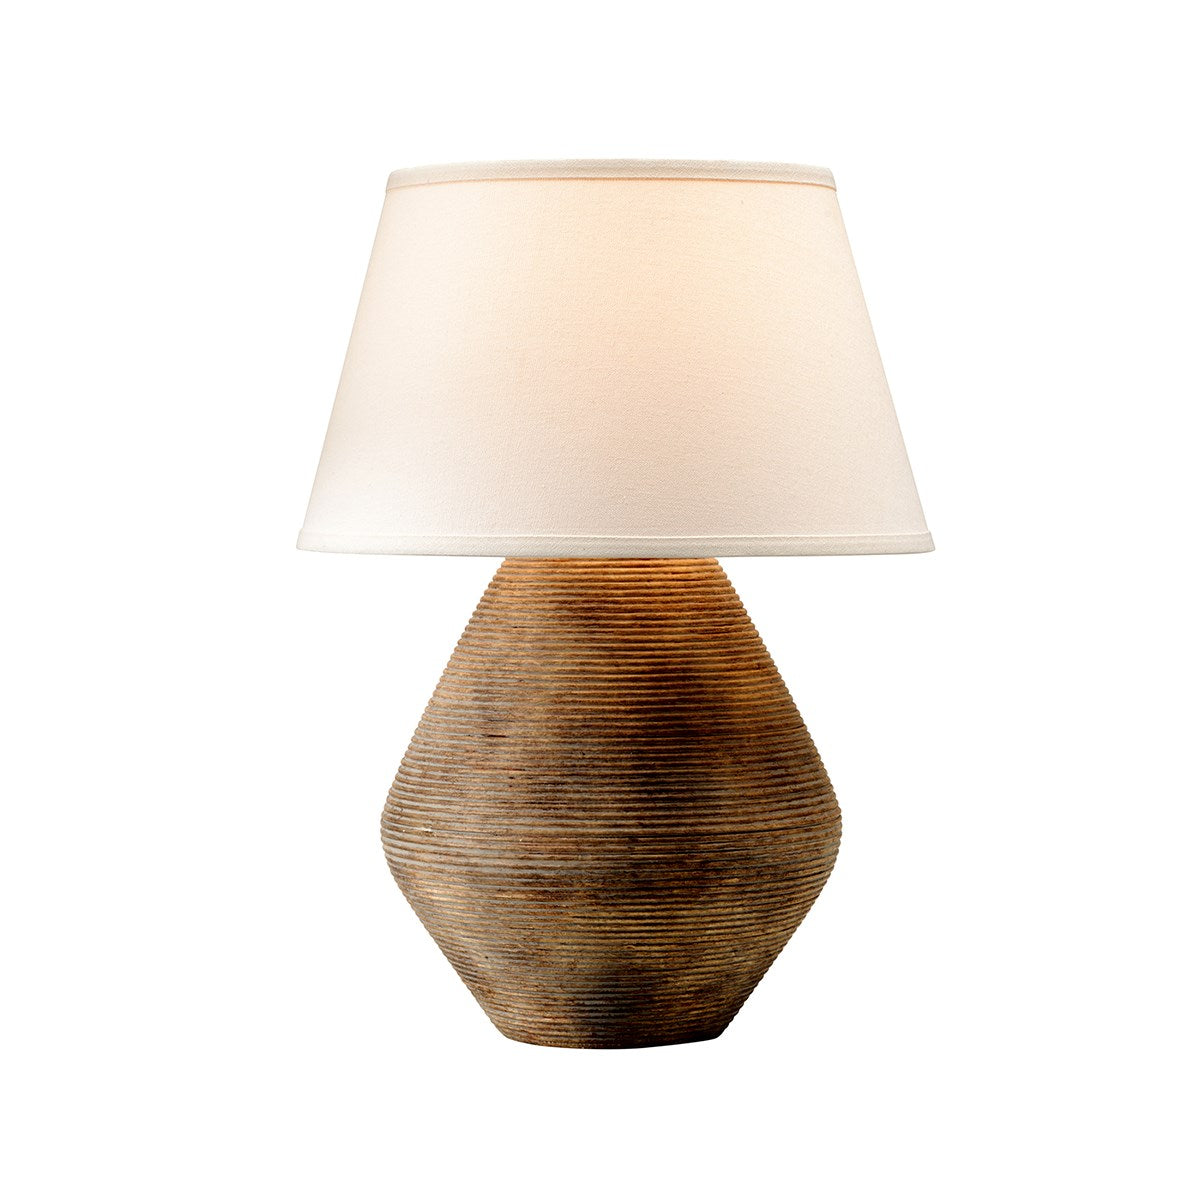 Calabria Textured Table Lamp